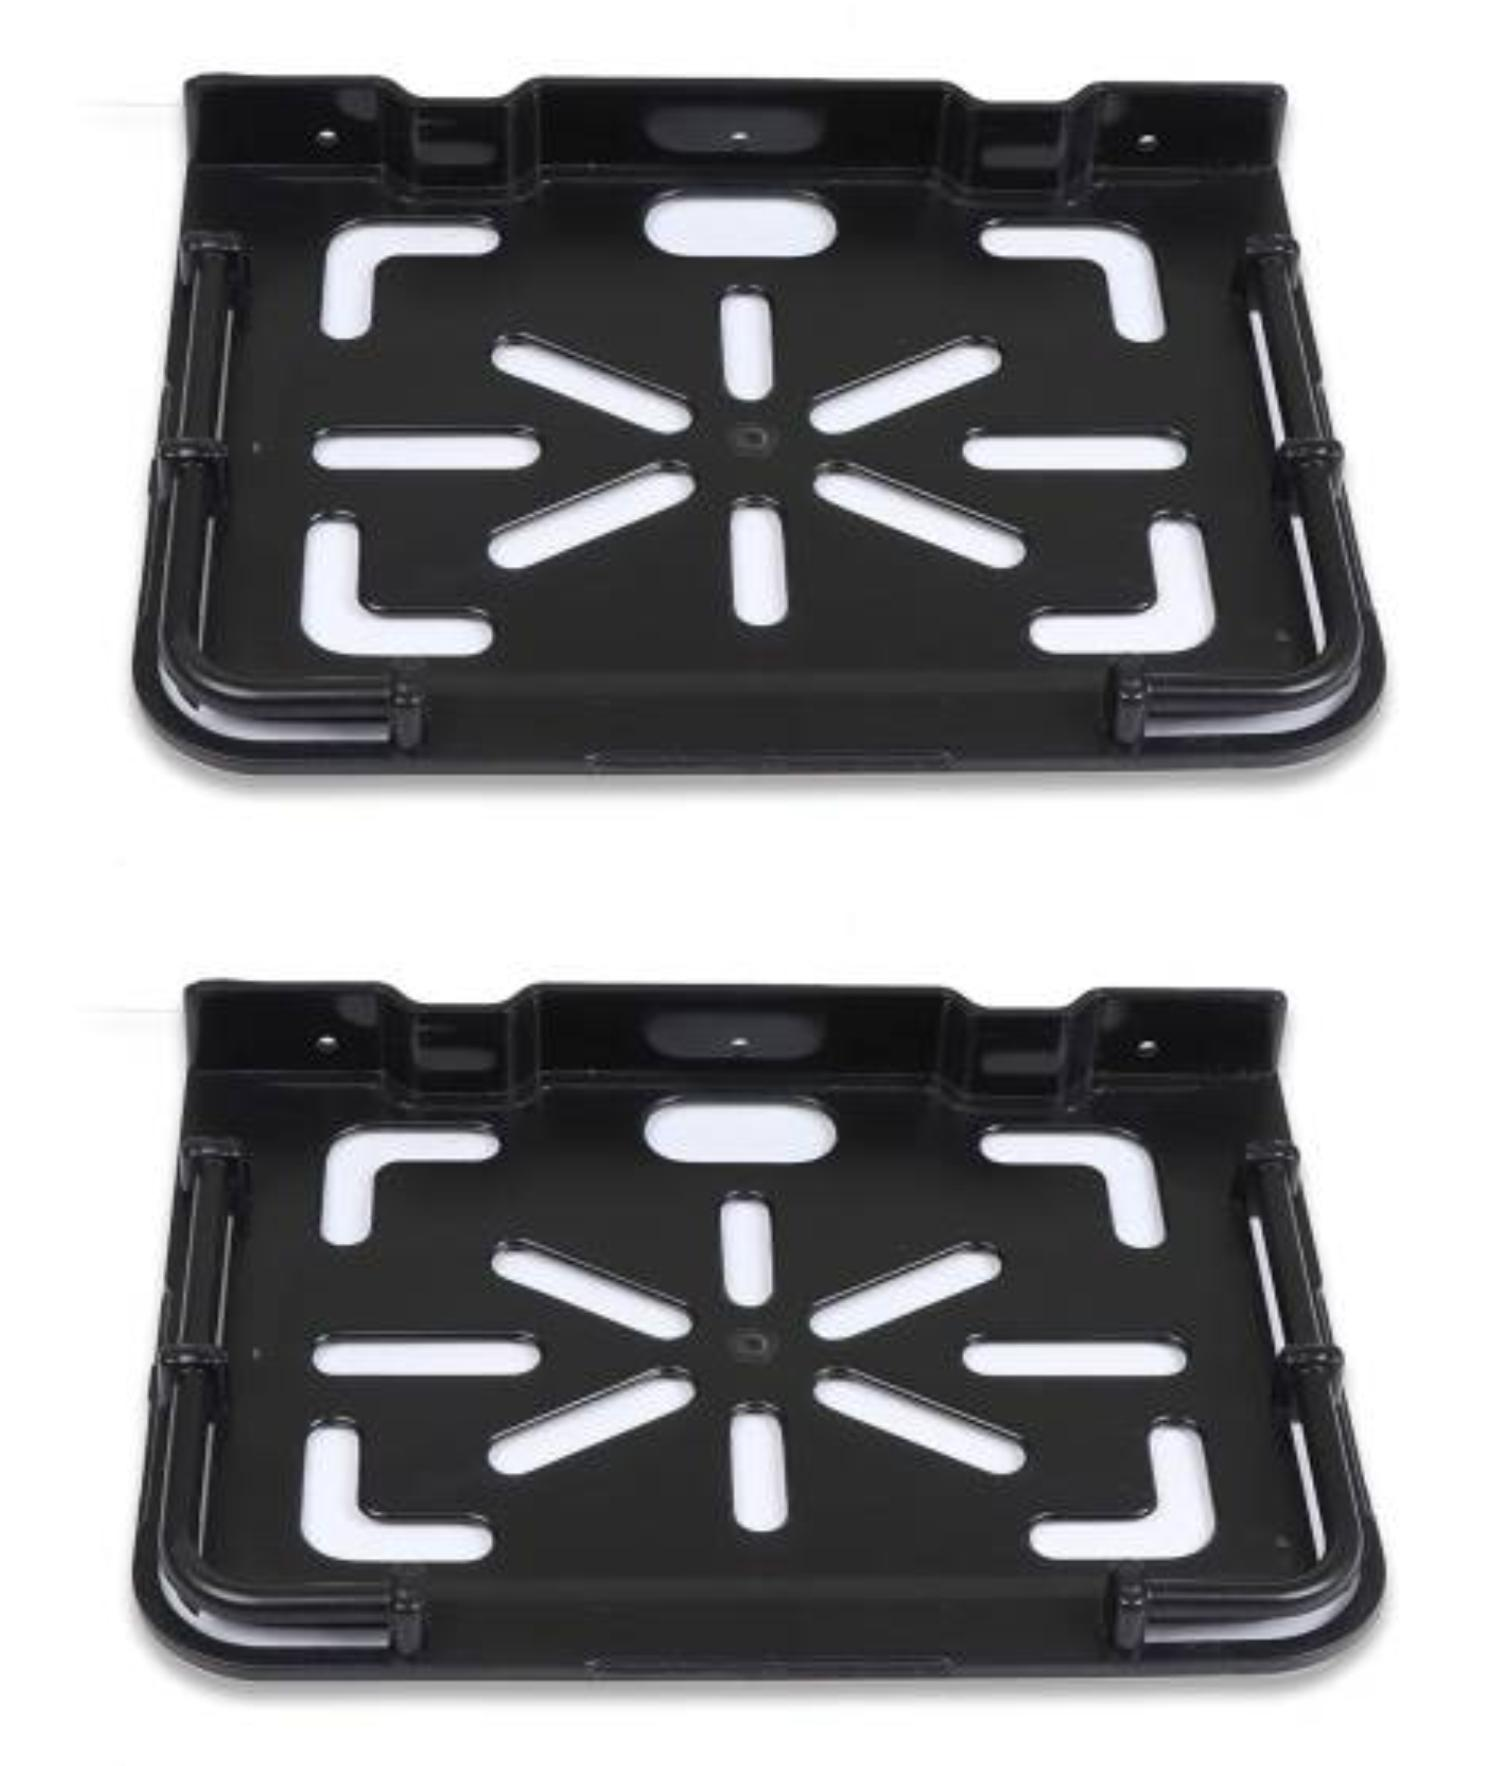 Drizzle Supreme Set Top Box Stand Black, Set Top Box Shelf    Pack of 2 Pieces